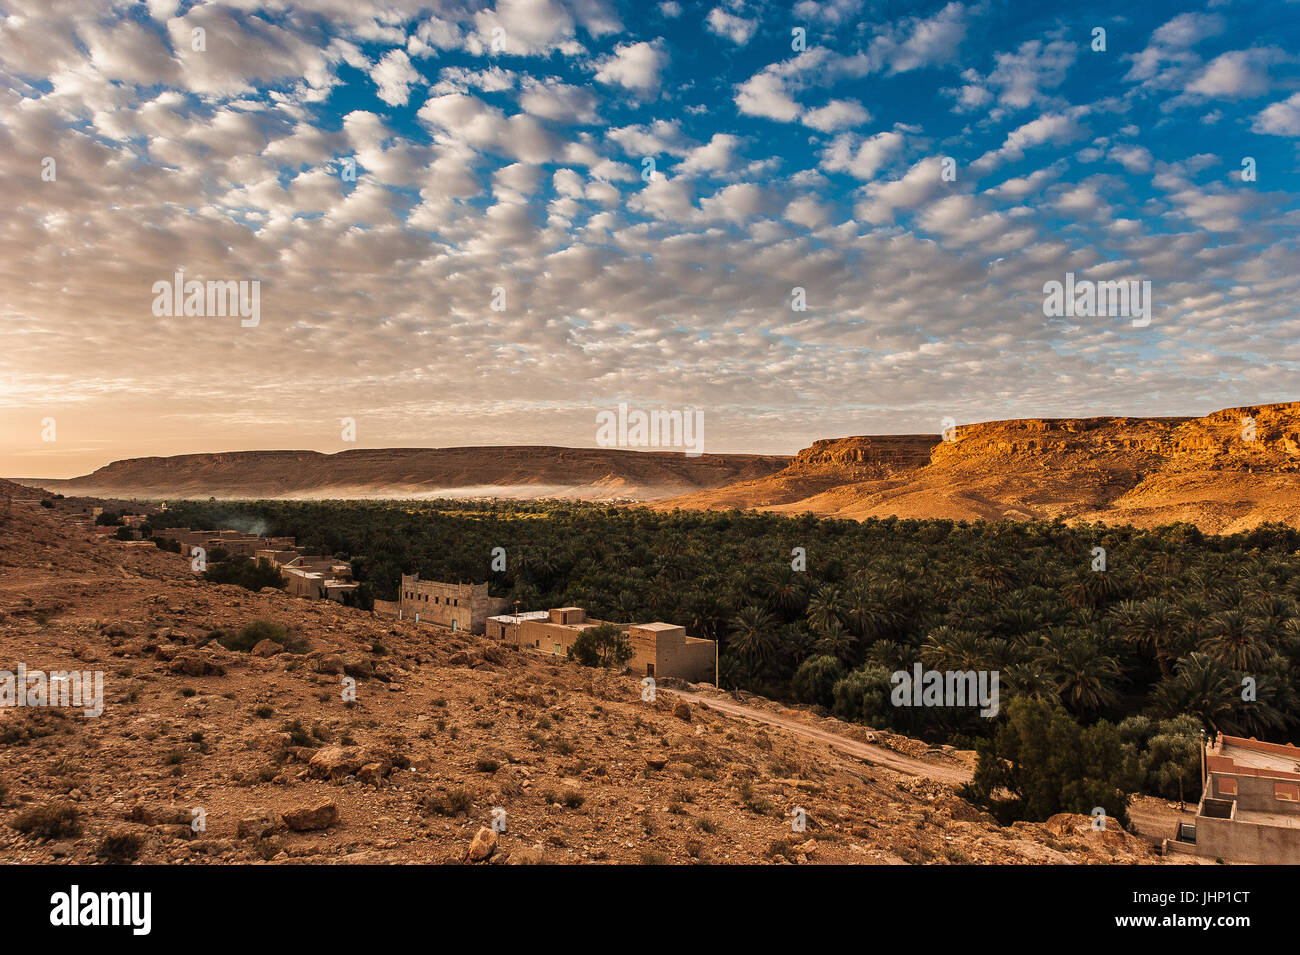 beautiful landscape outside a small village in the Draa Valley, near Zagora southern Morocco, Africa - Stock Image